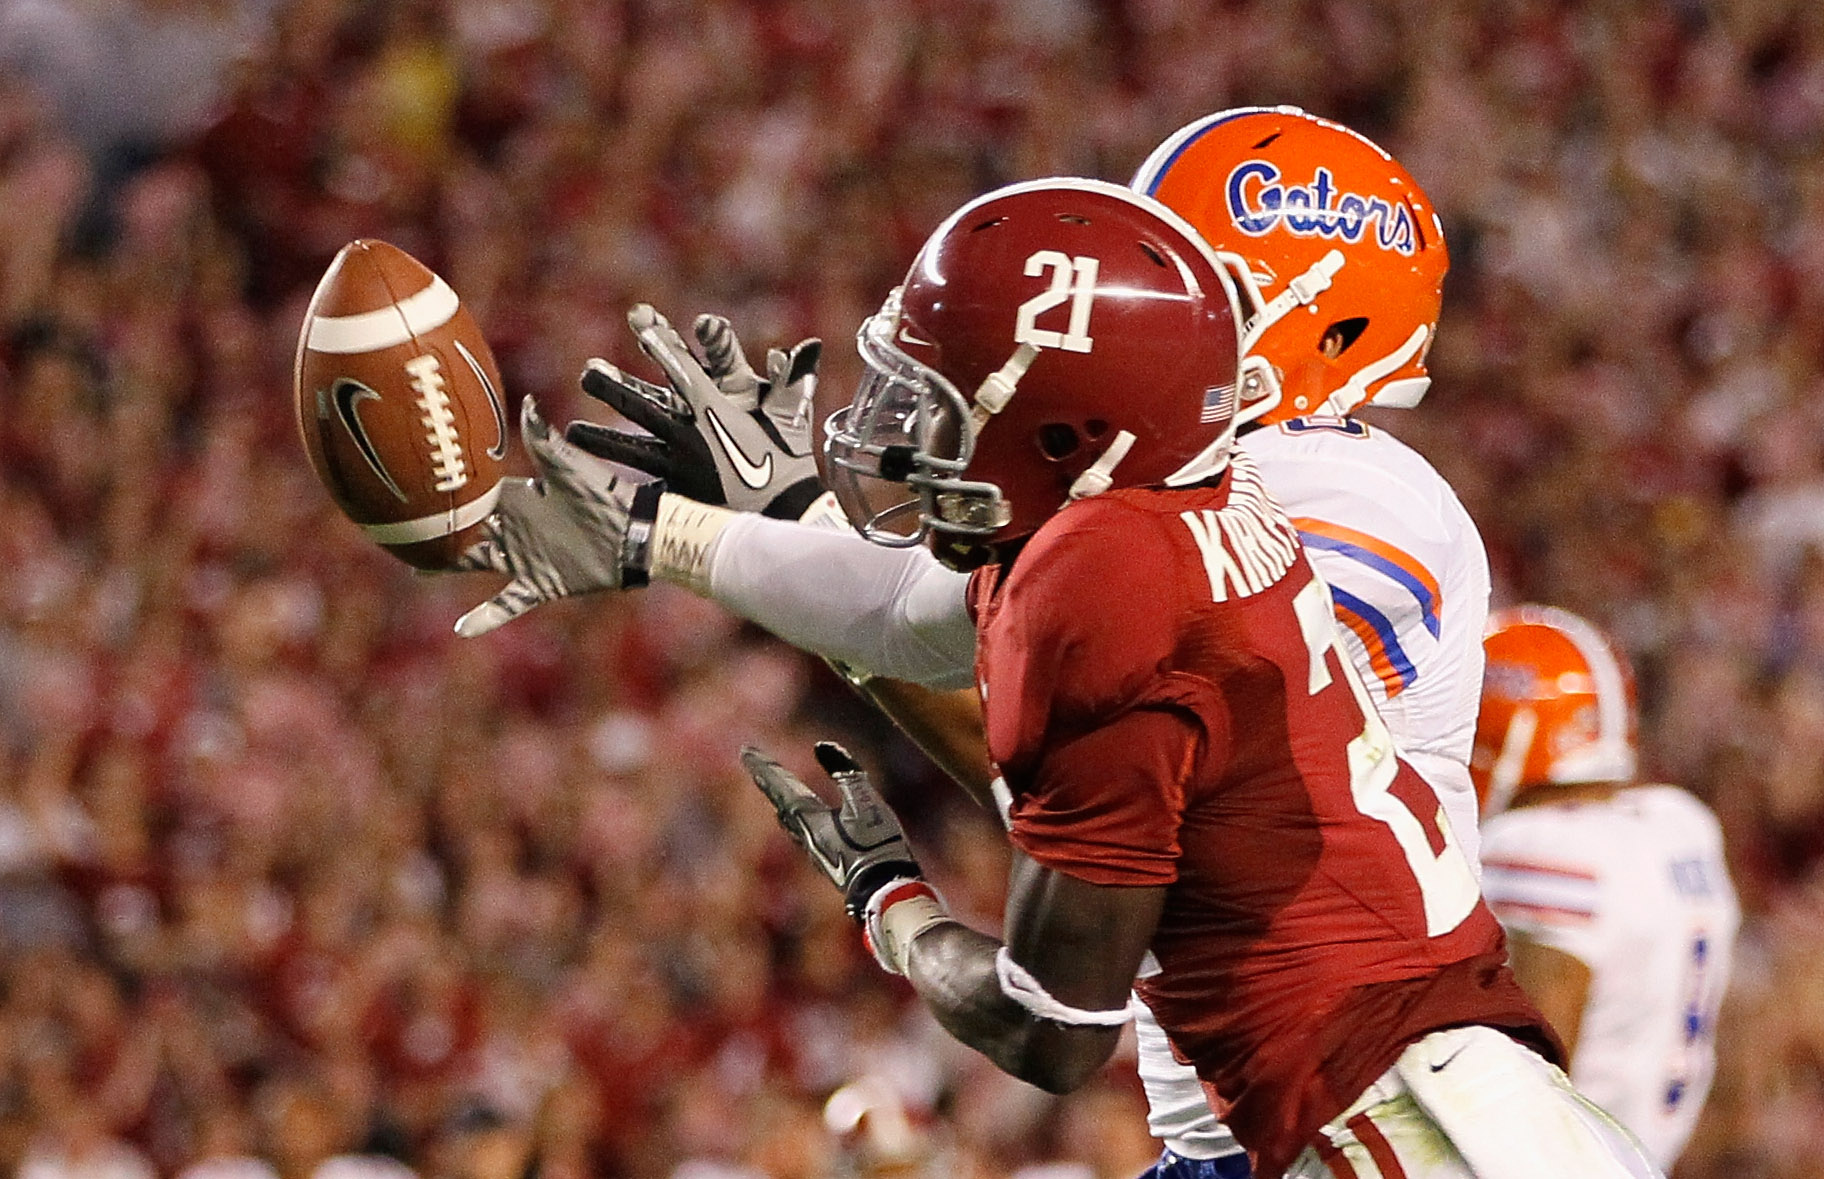 'Bama has a tradition of being tough when protecting the goal line.